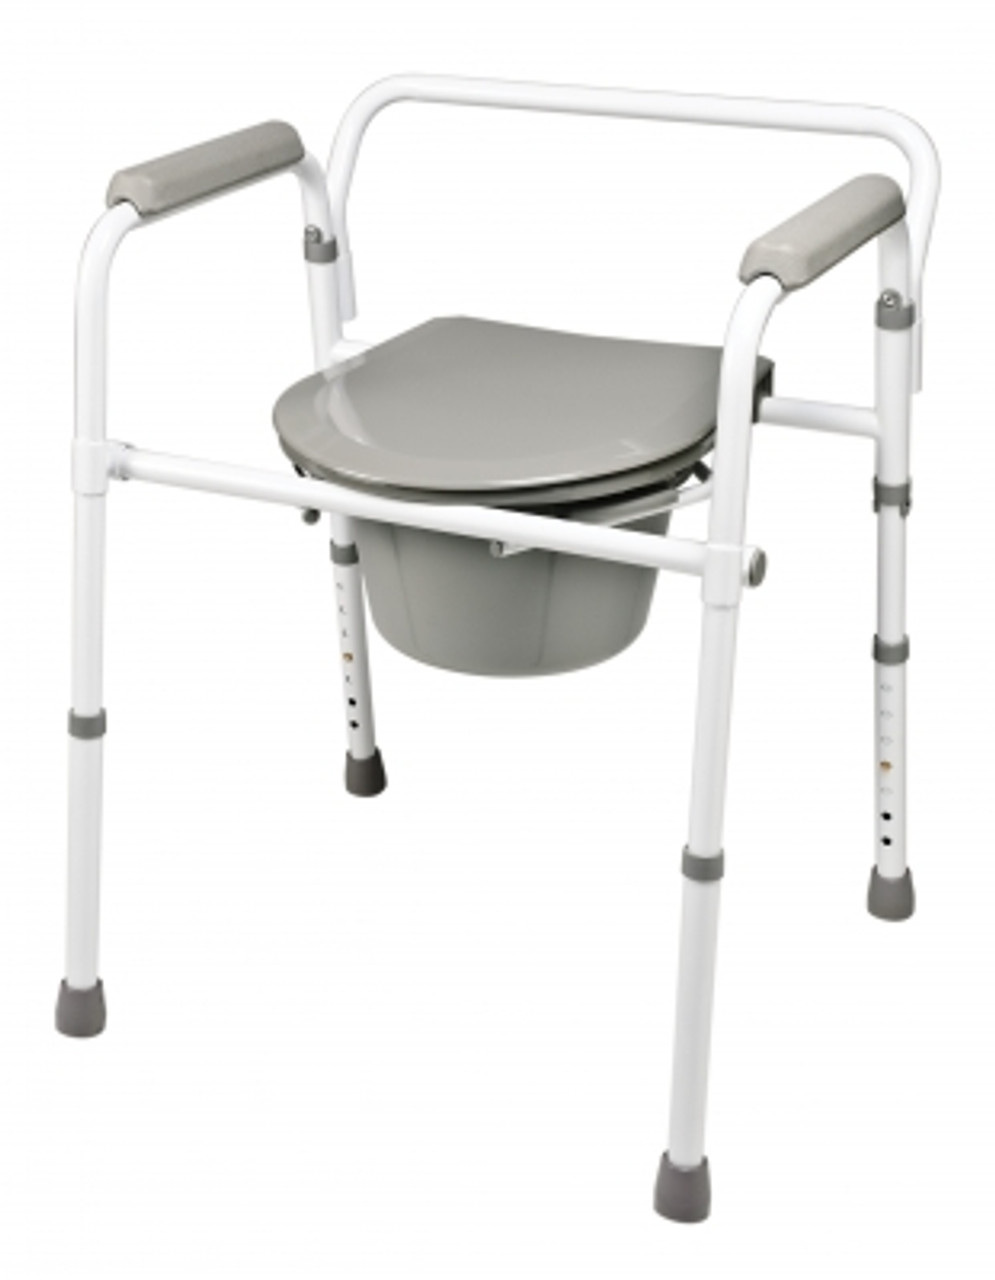 Steel folding commode closed